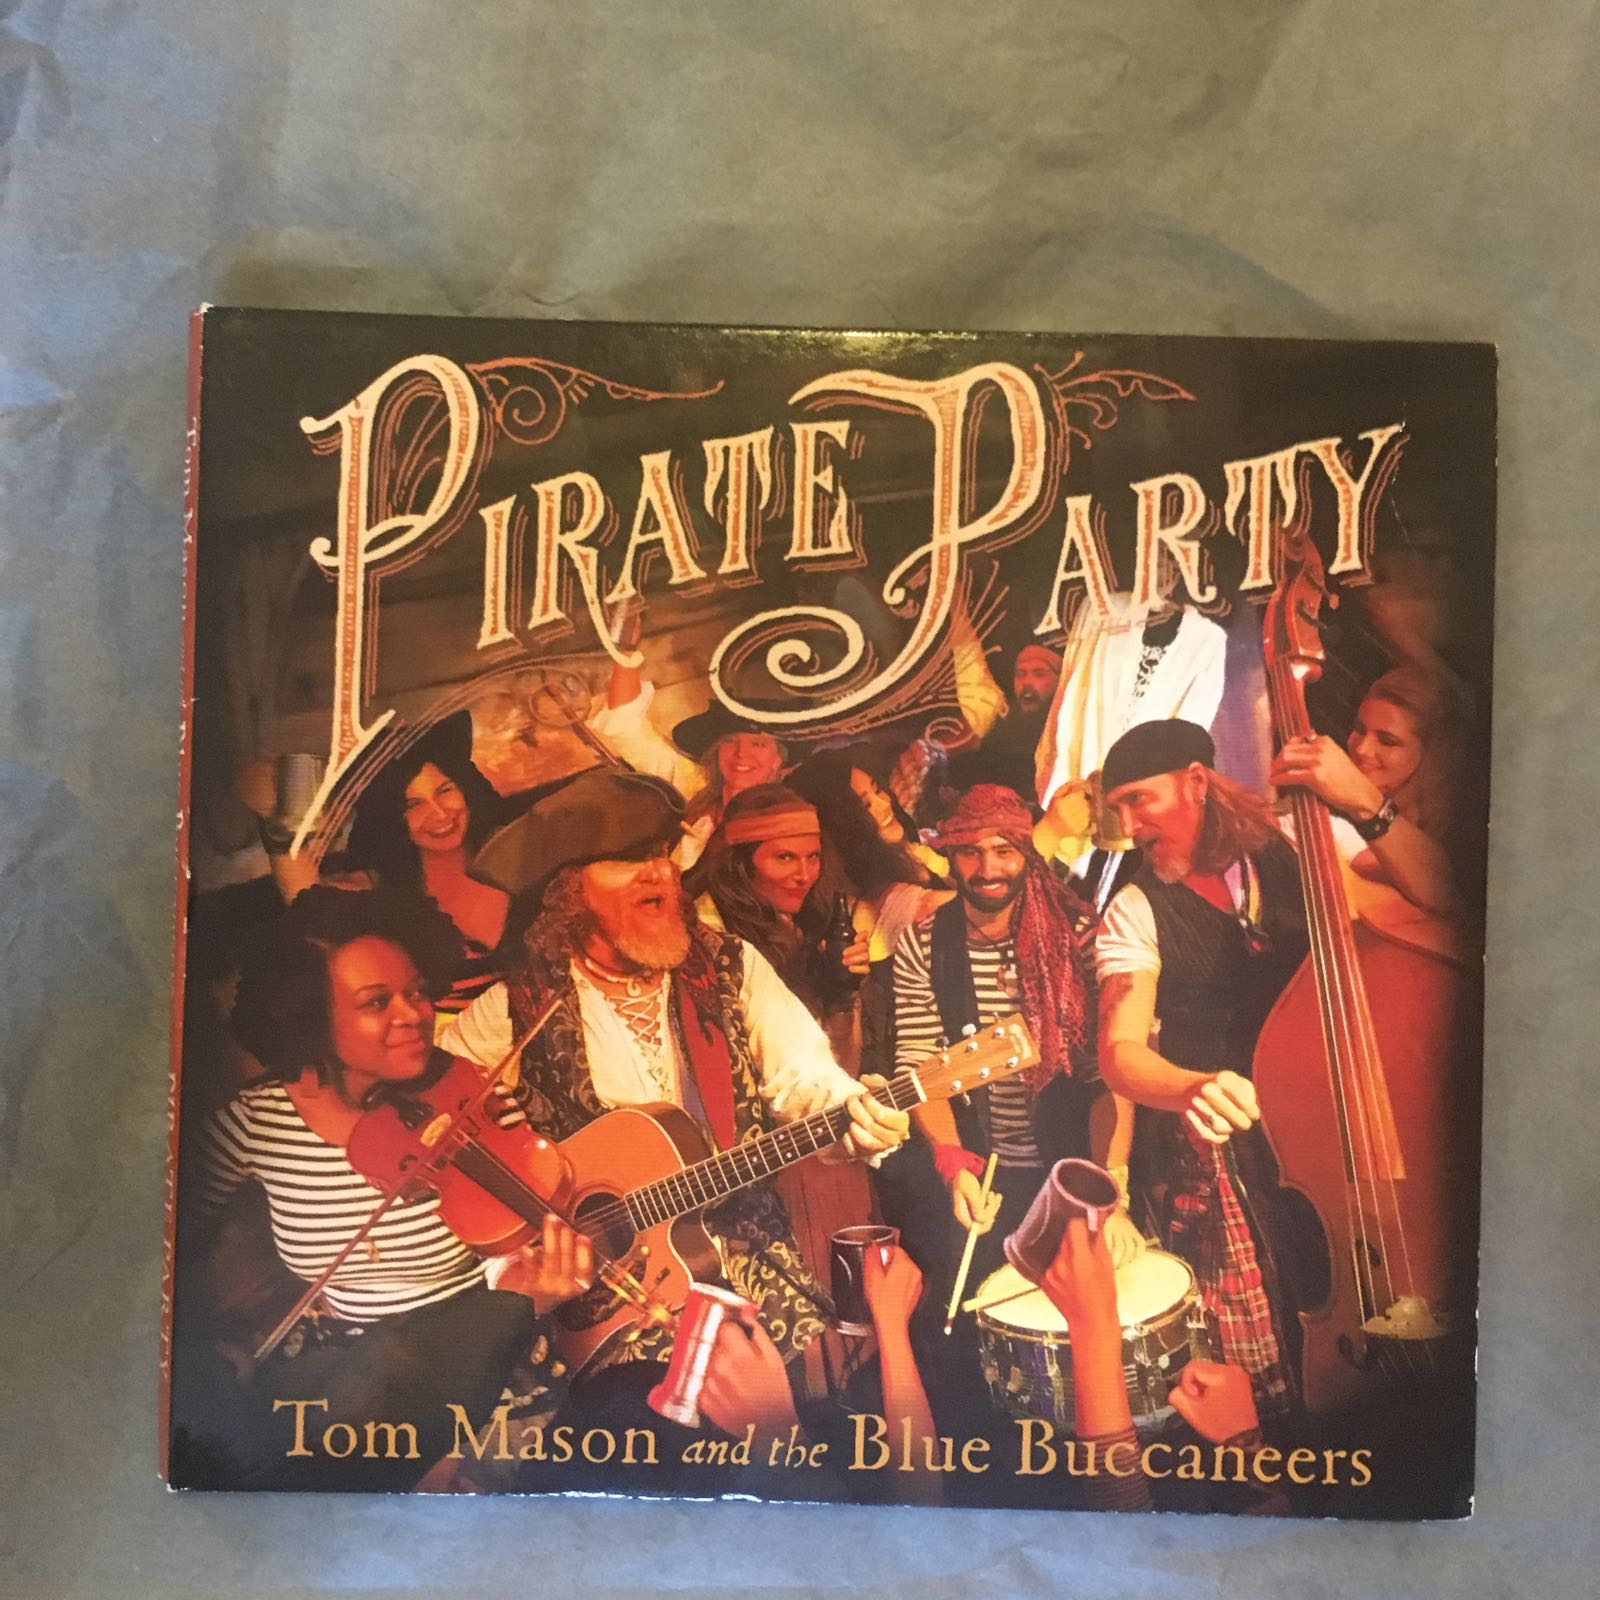 CD - Tom Mason & The Blue Buccaneers, Pirate Party